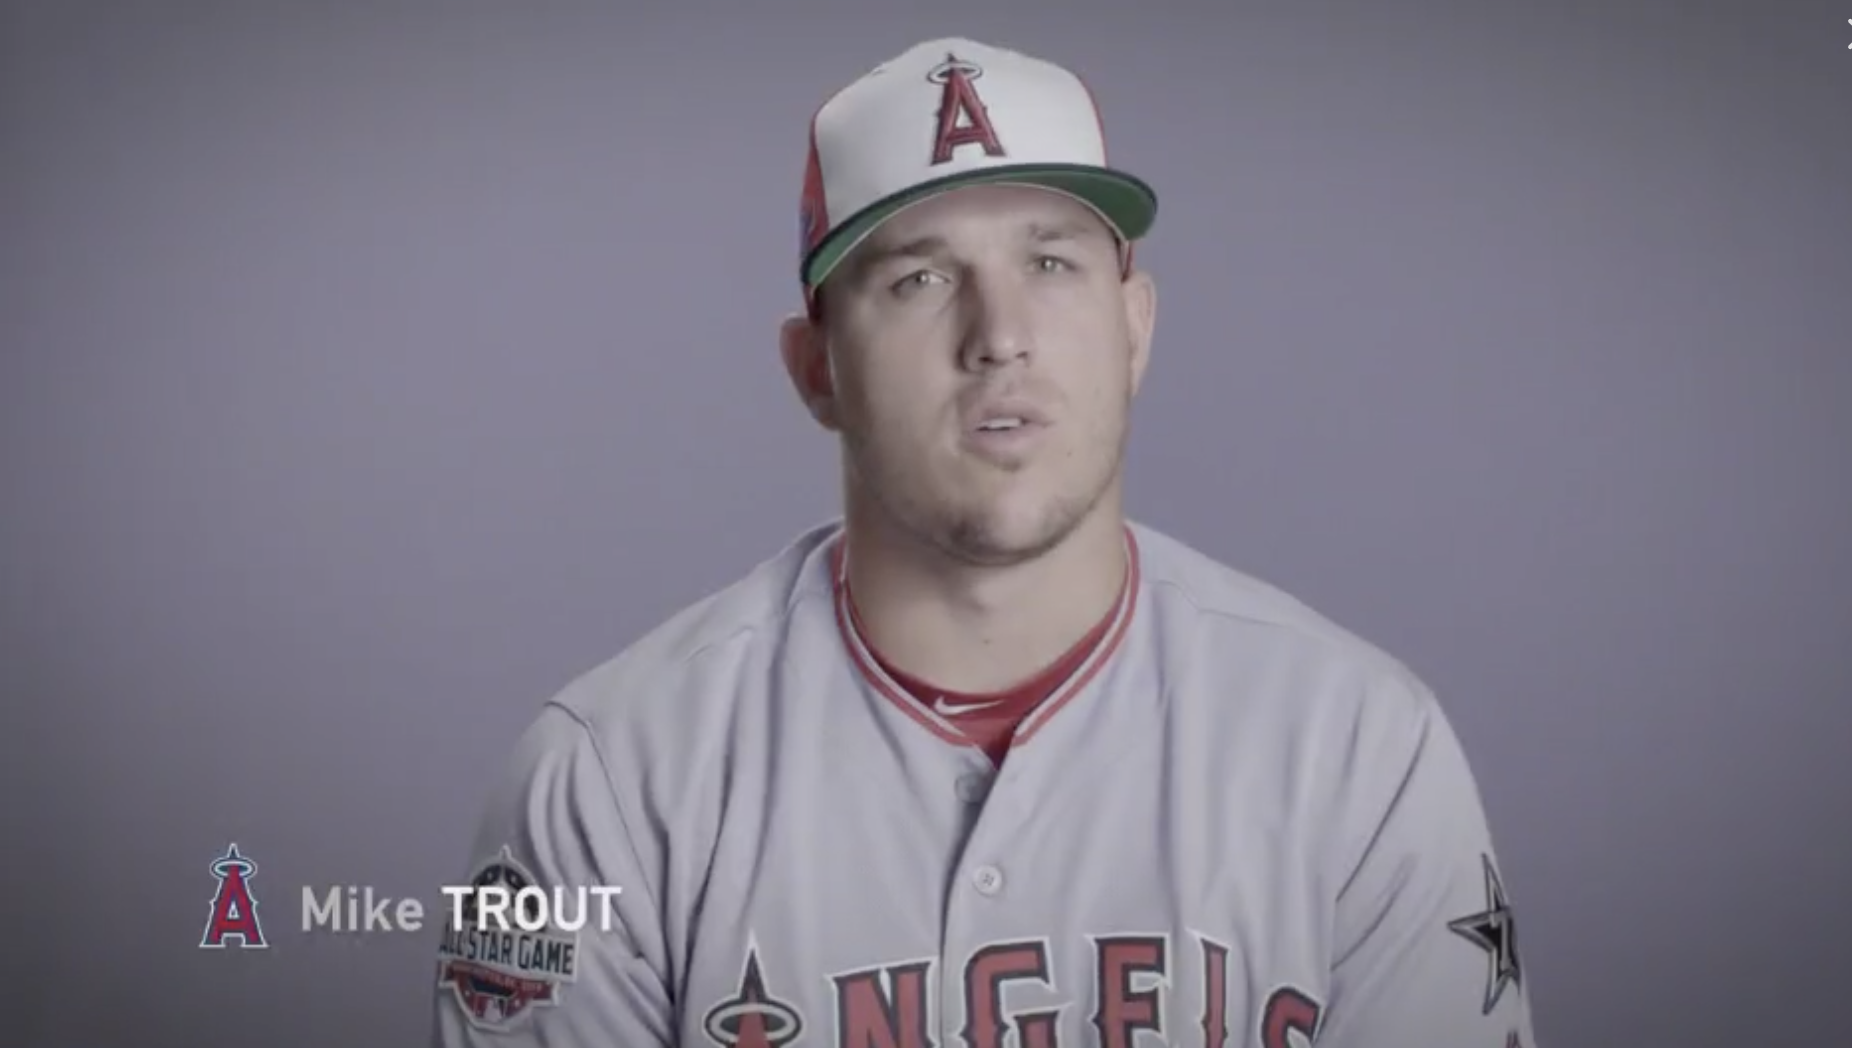 Trout Mike